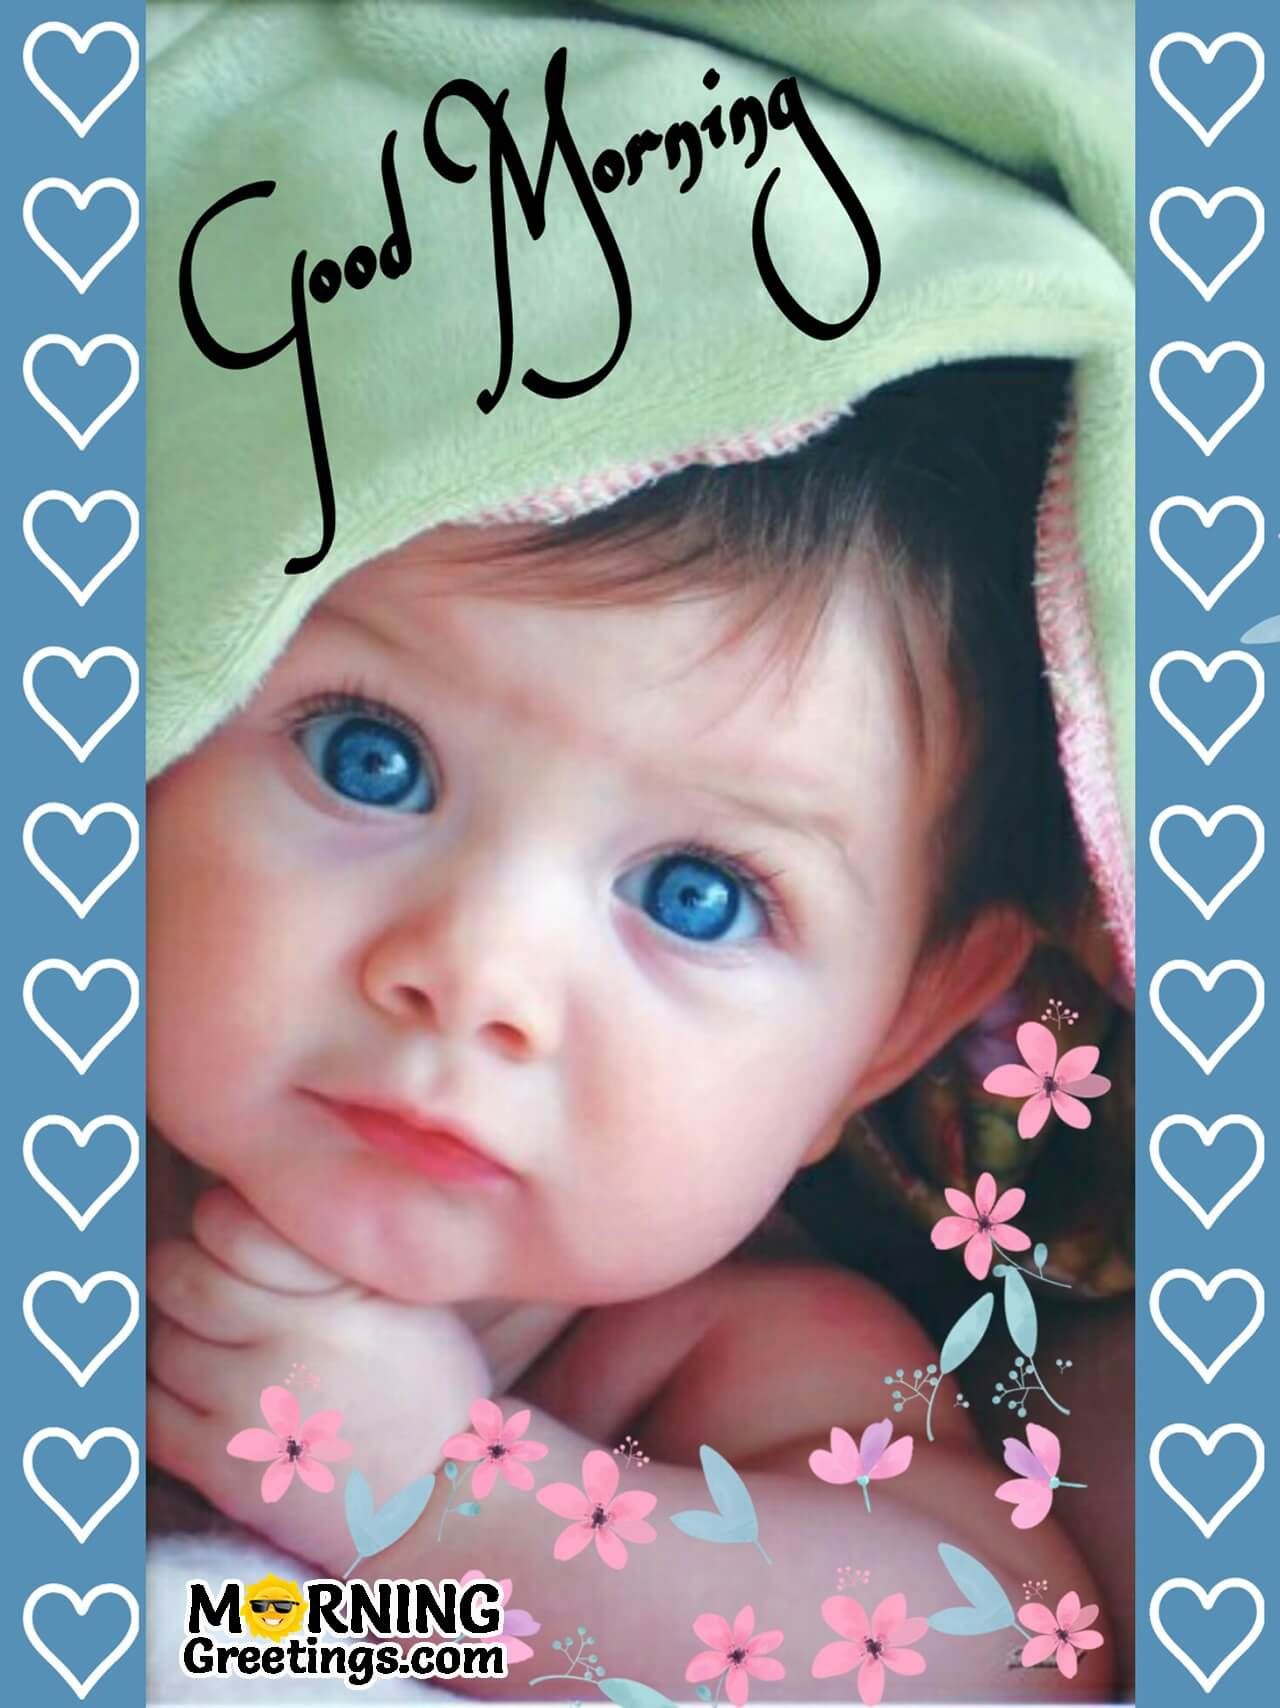 15 Best Good Morning Images Of Babies Morning Greetings Morning Quotes And Wishes Images